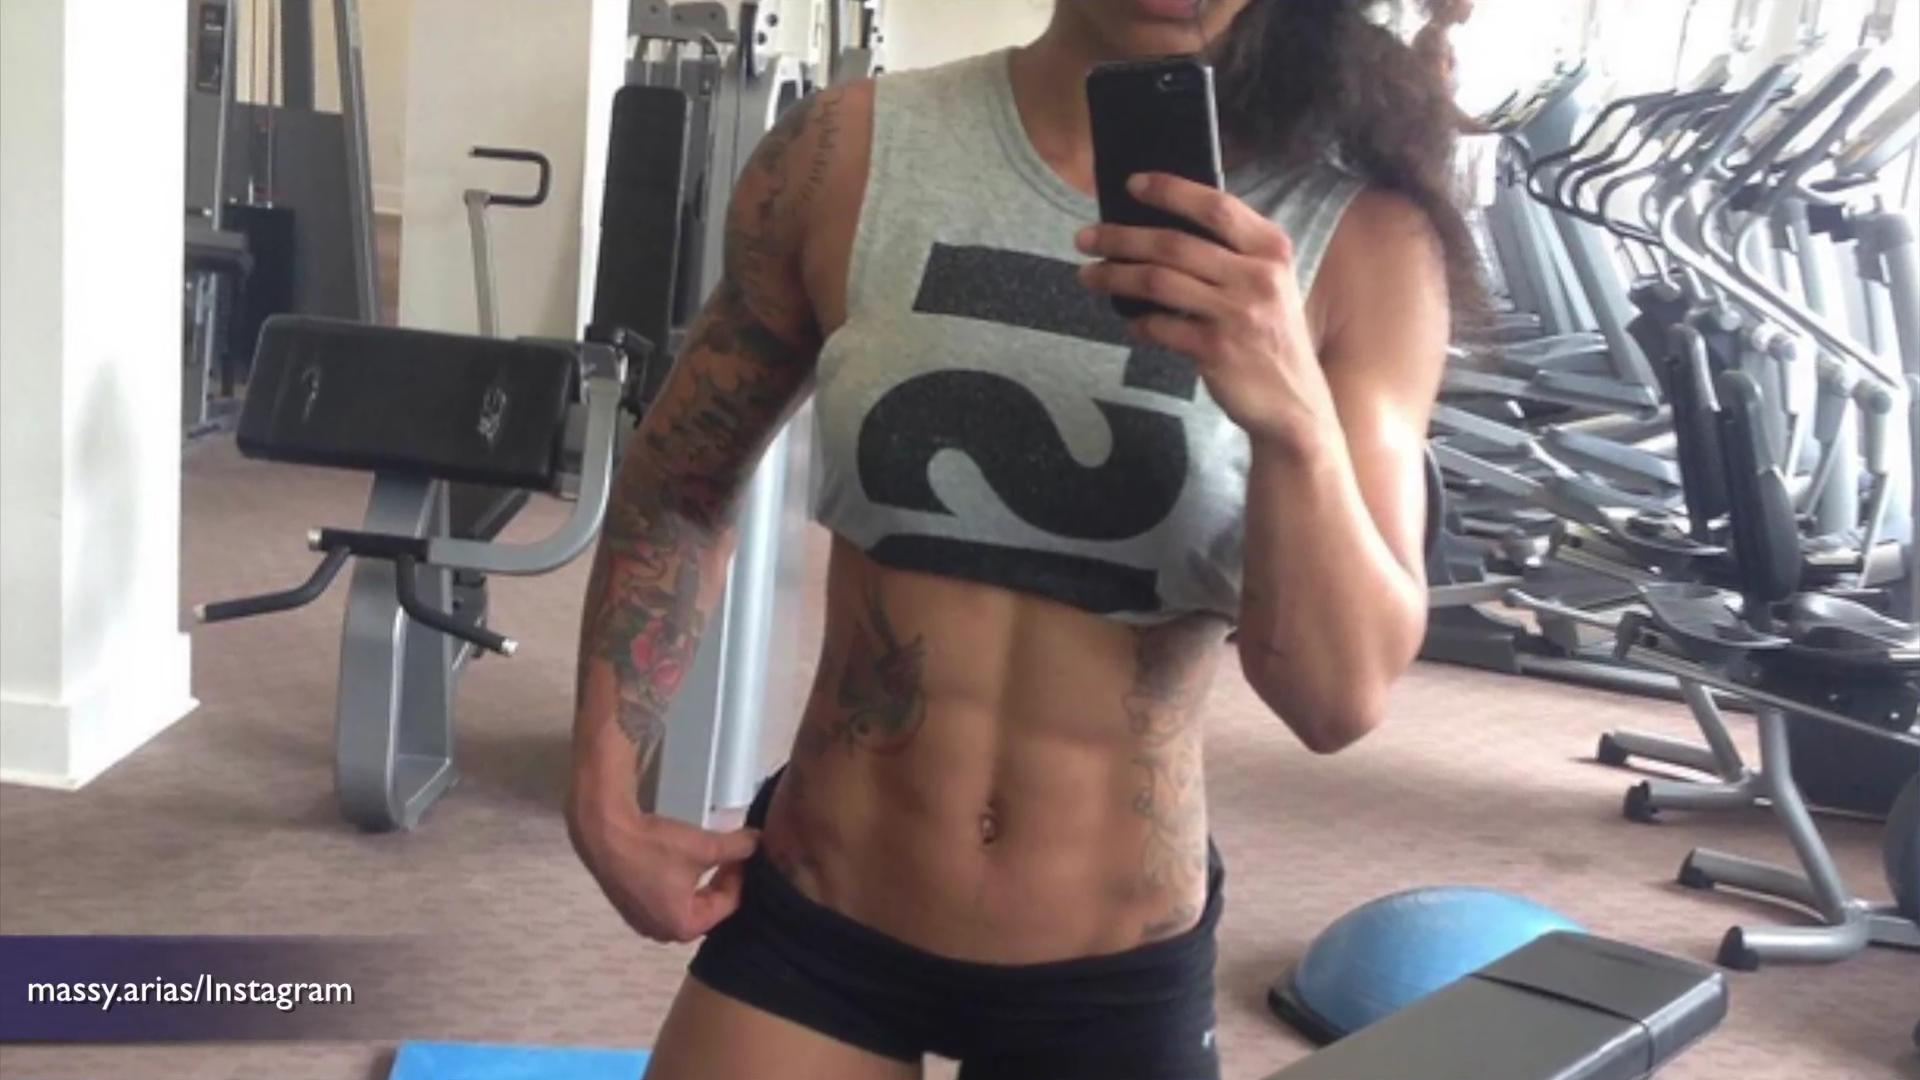 5 Female fitness buffs you should be following on Instagram